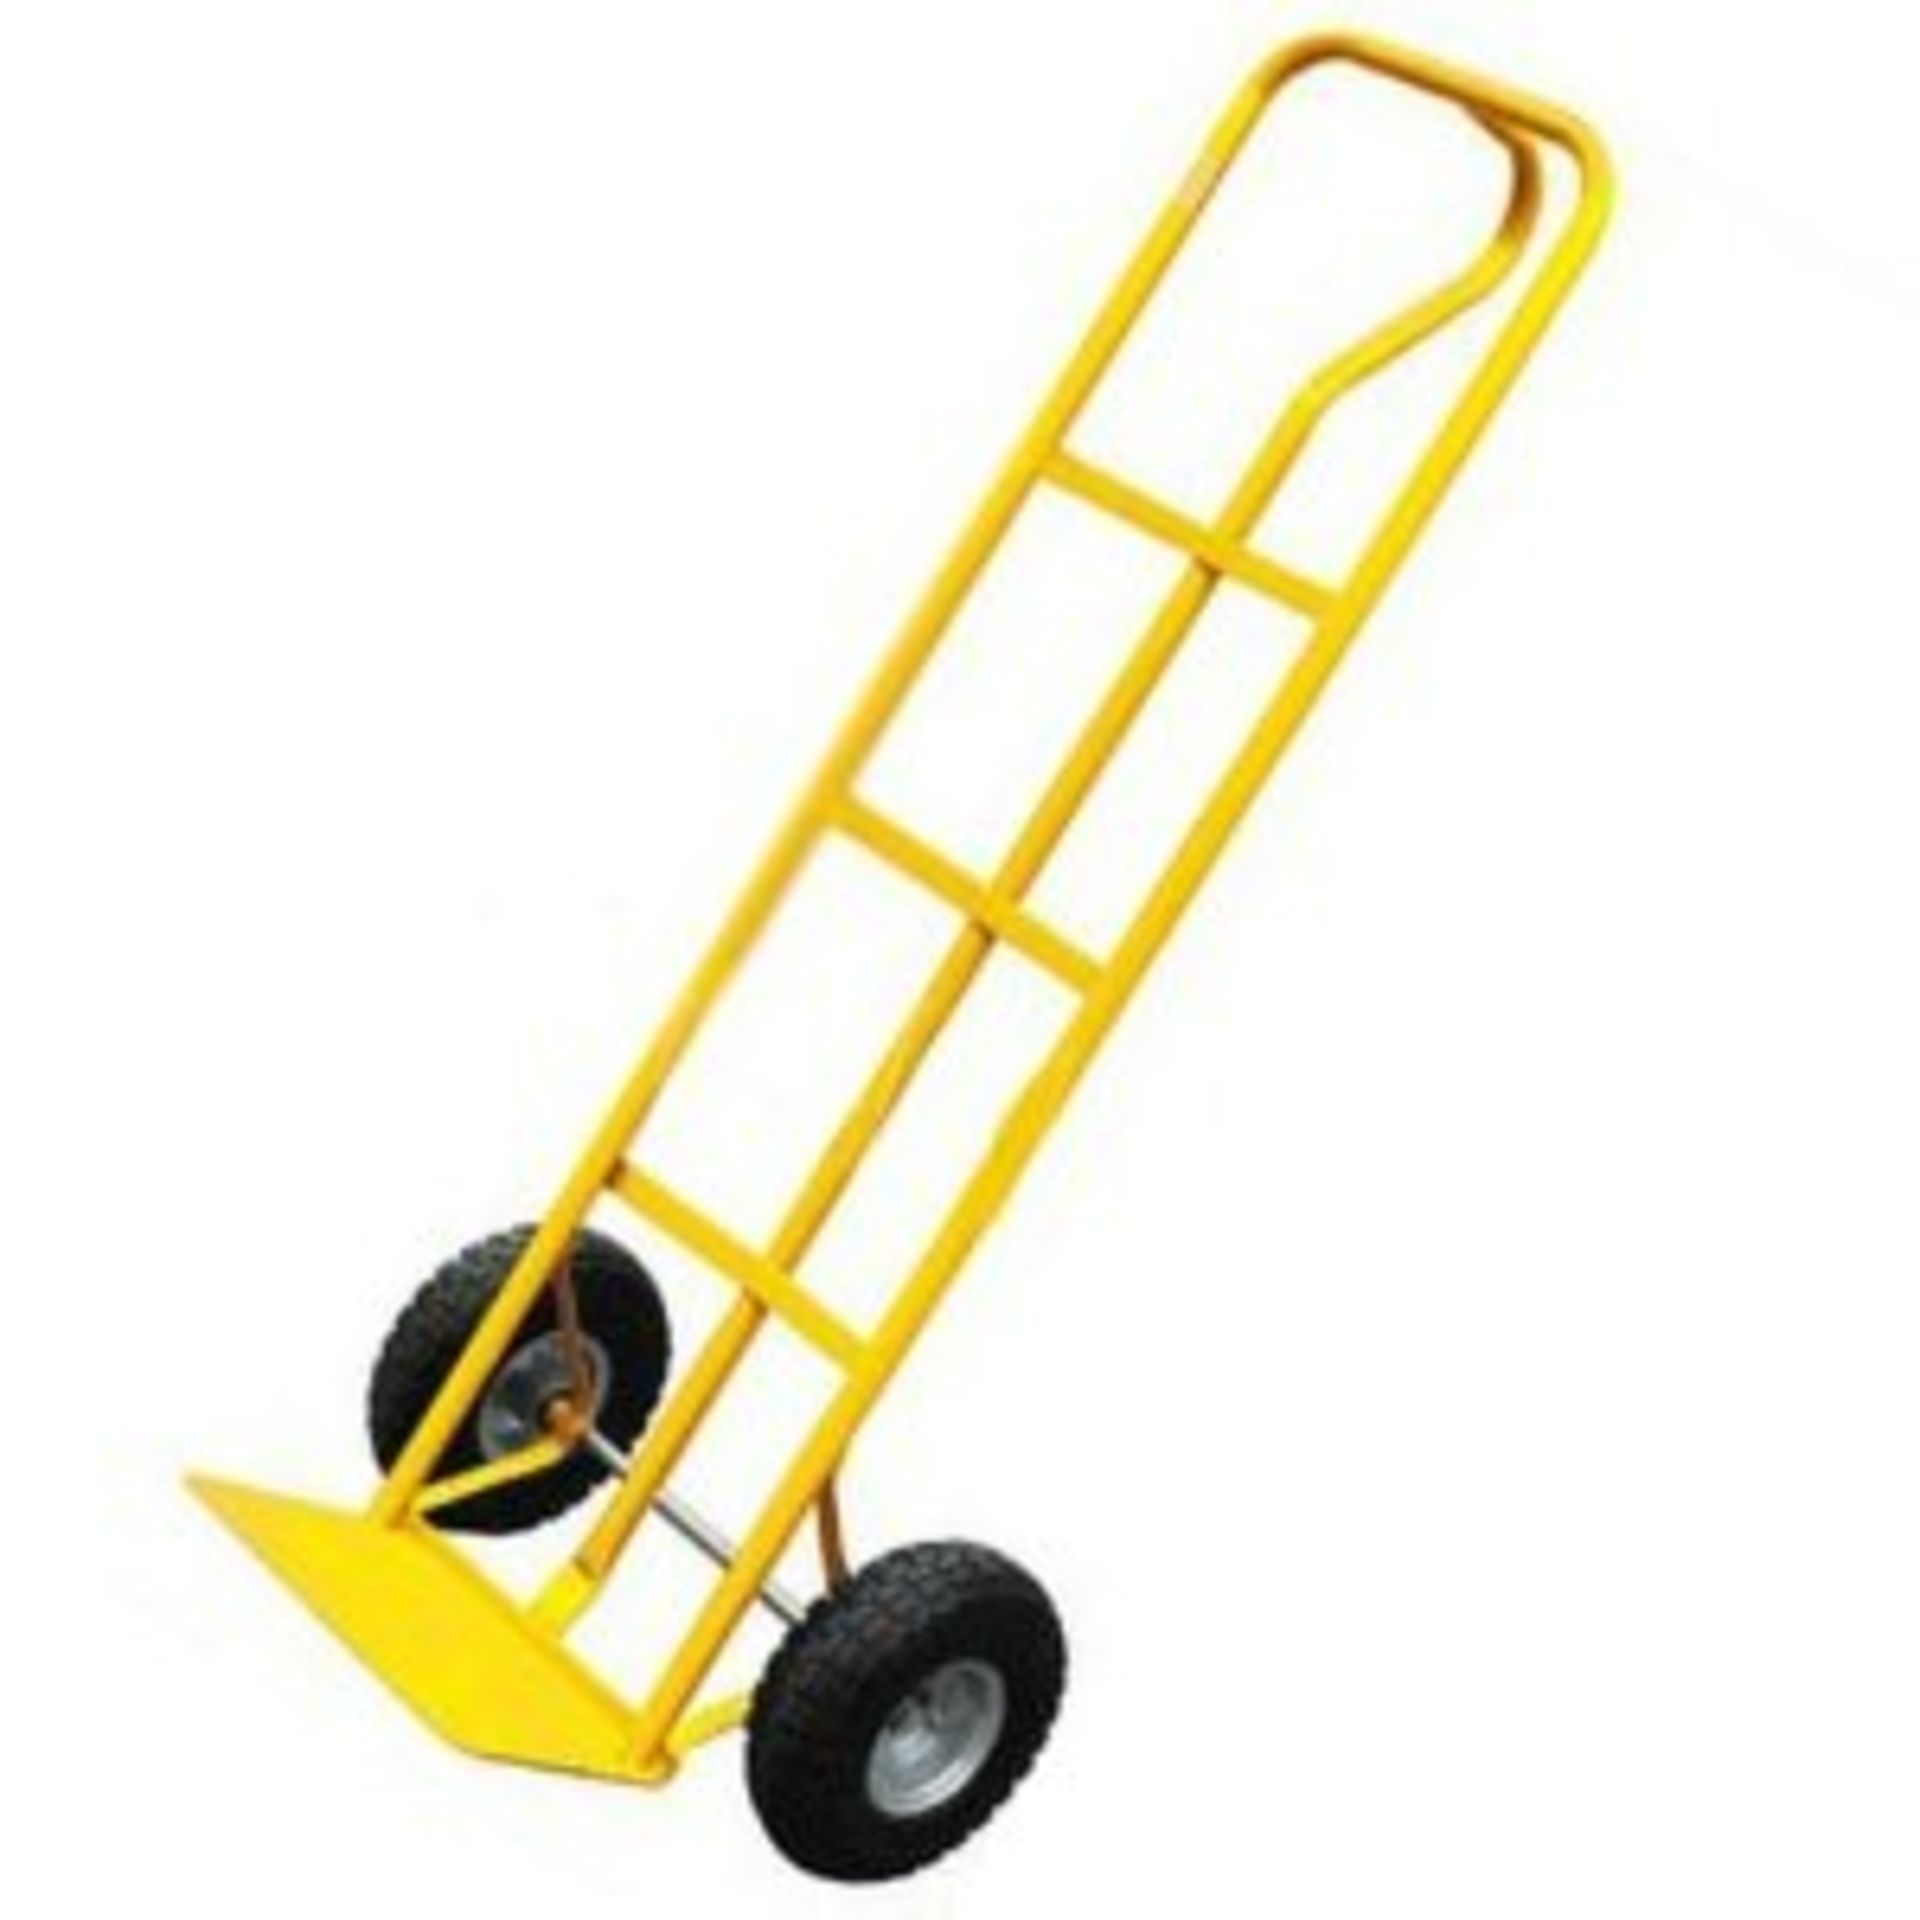 Lot 18024 - V Brand New Industrial Heavy Duty Sack Barrow/Trolley With Pneumatic Tyres Ffx.co.uk £47.02